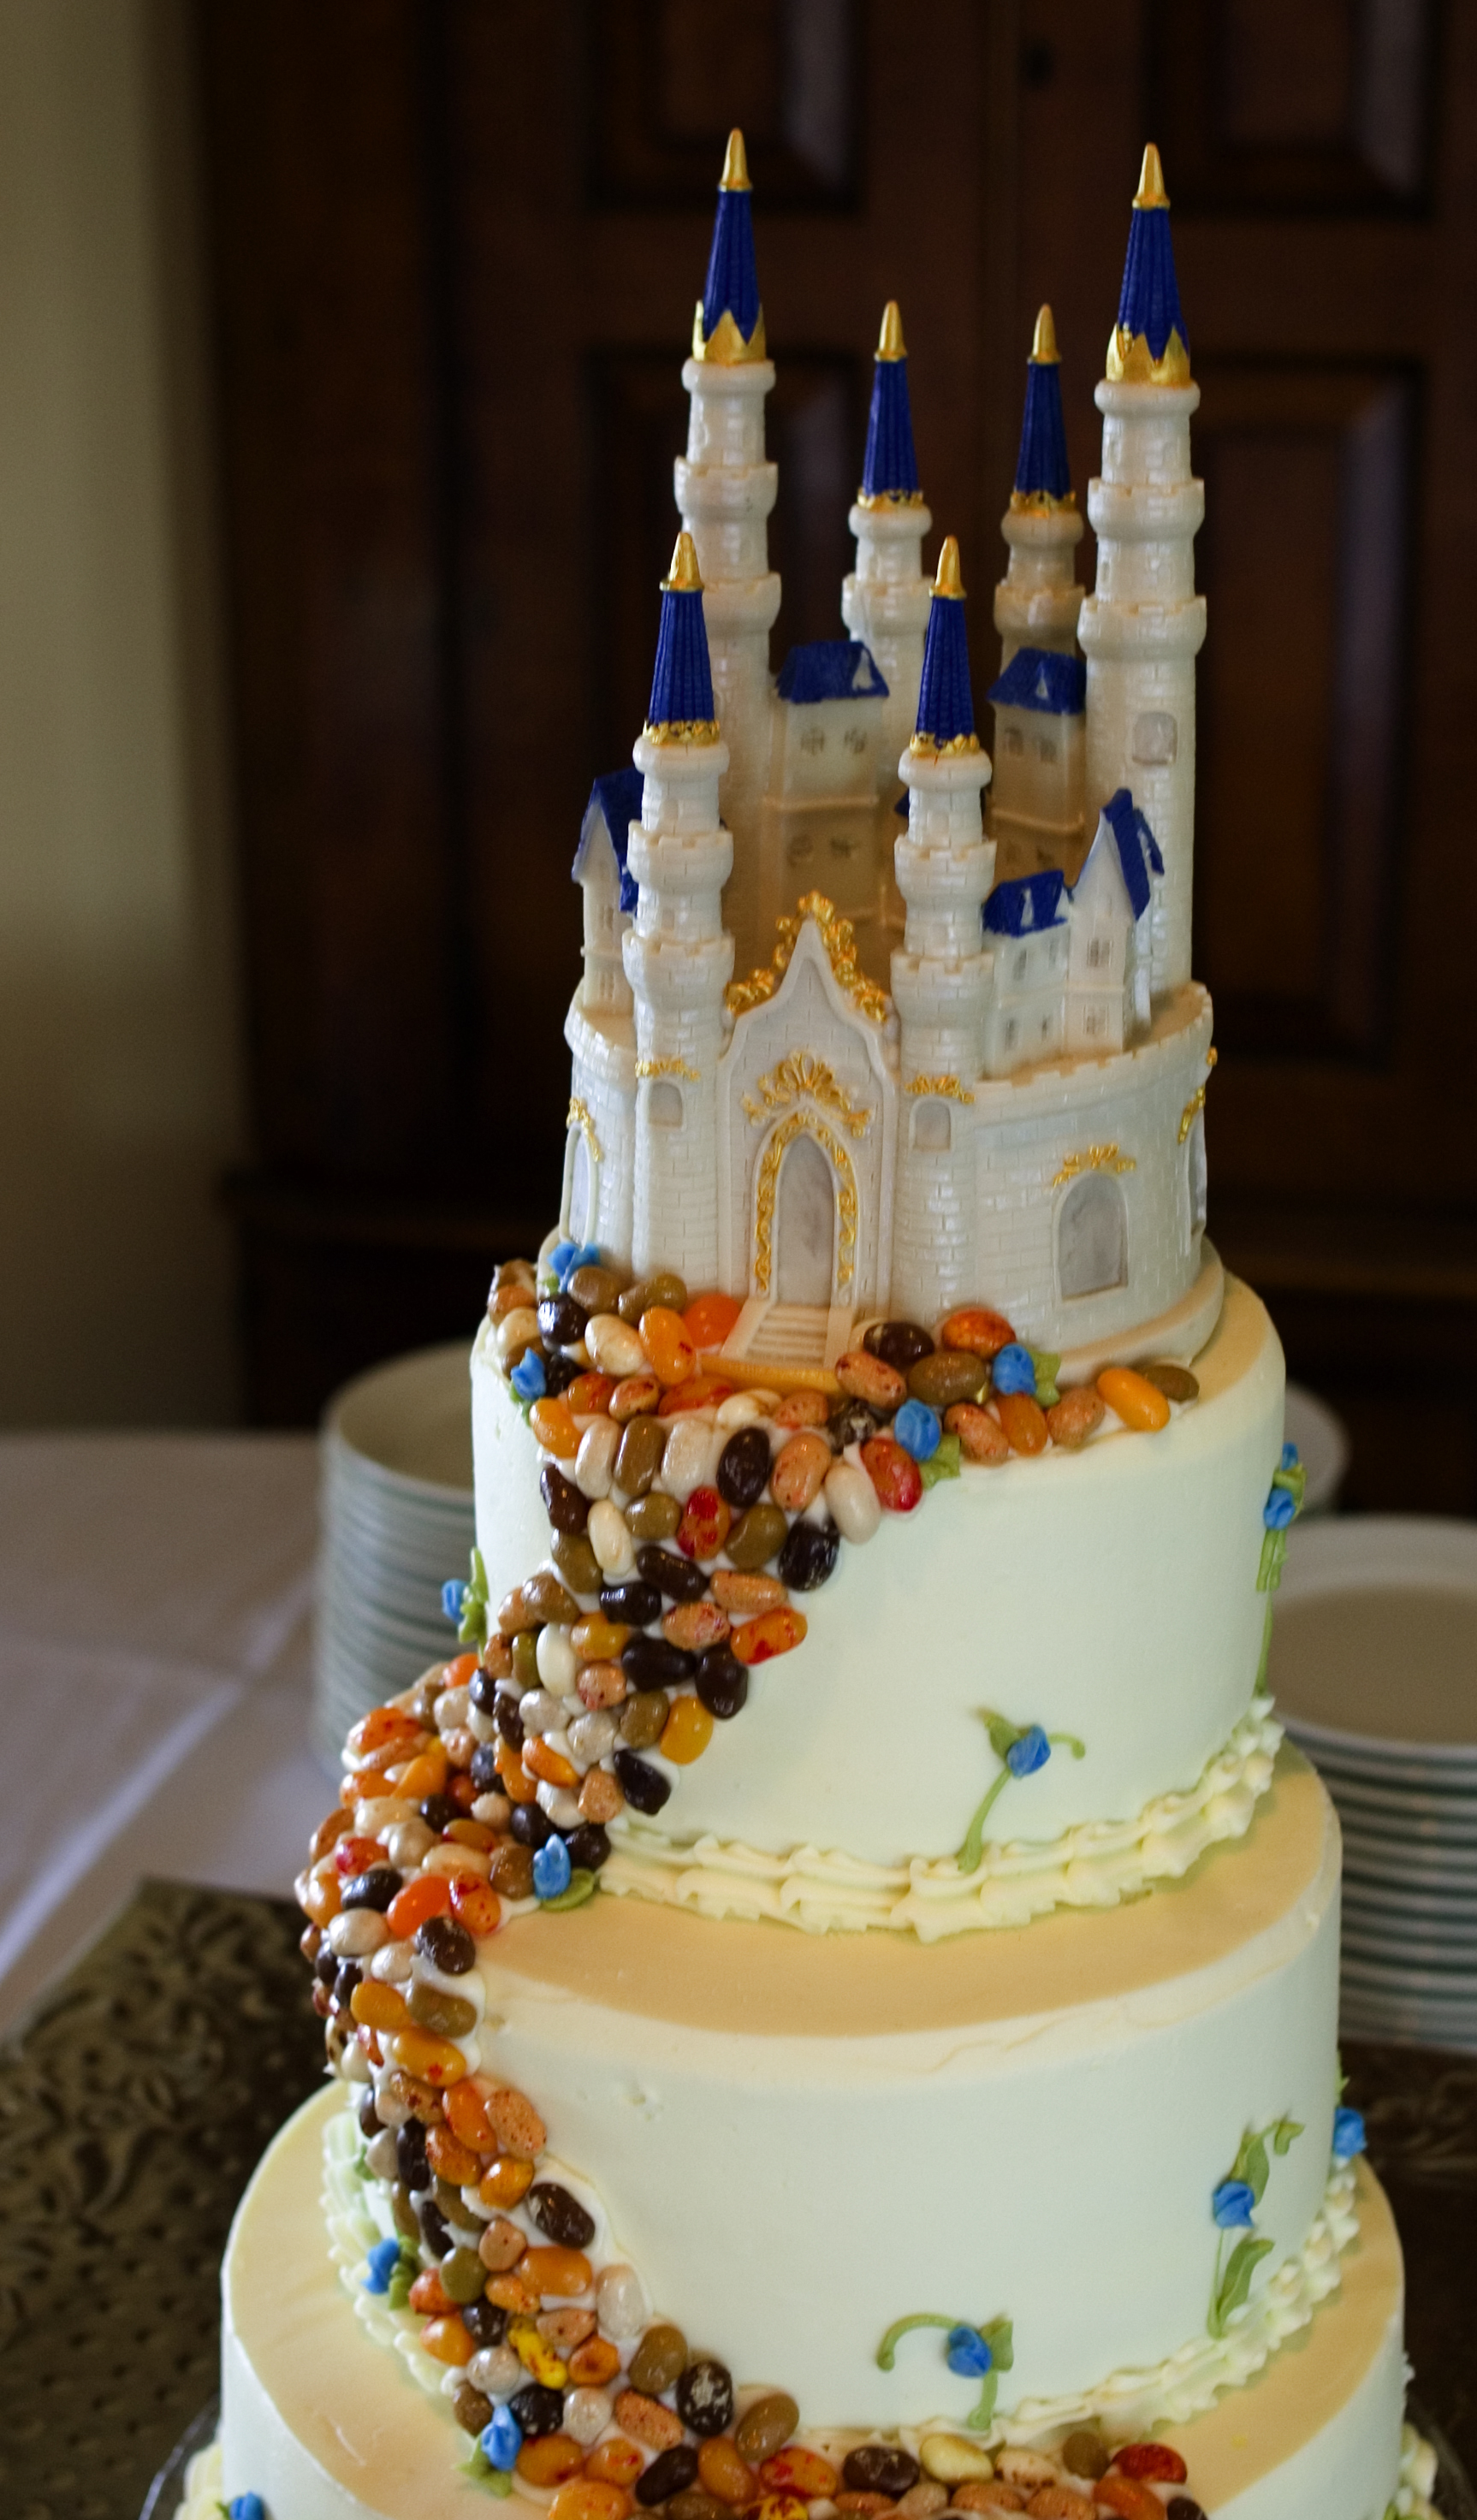 AMAZING geeky wedding cakes! A solid list of inspiration for a geeky wedding.